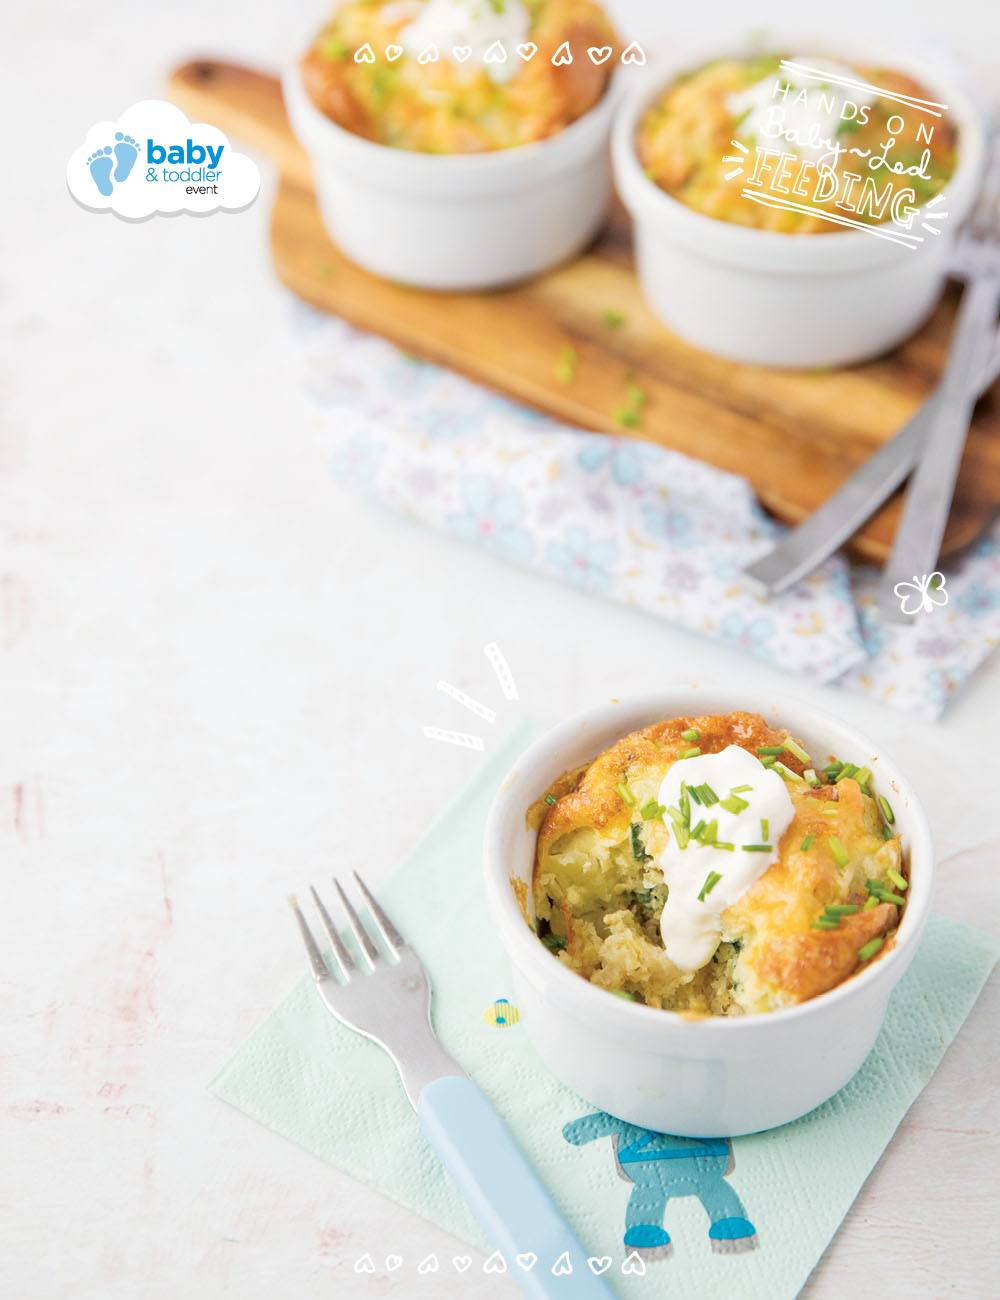 Super Healthy Spanish Omelette Baby Led Feeding a perfect baby lunch, little omelette with vegetables. Full recipe image for main recipe listing. Lunch ideas for baby led weaning, kid approved recipe full of vegetables and served with a side of sour cream.